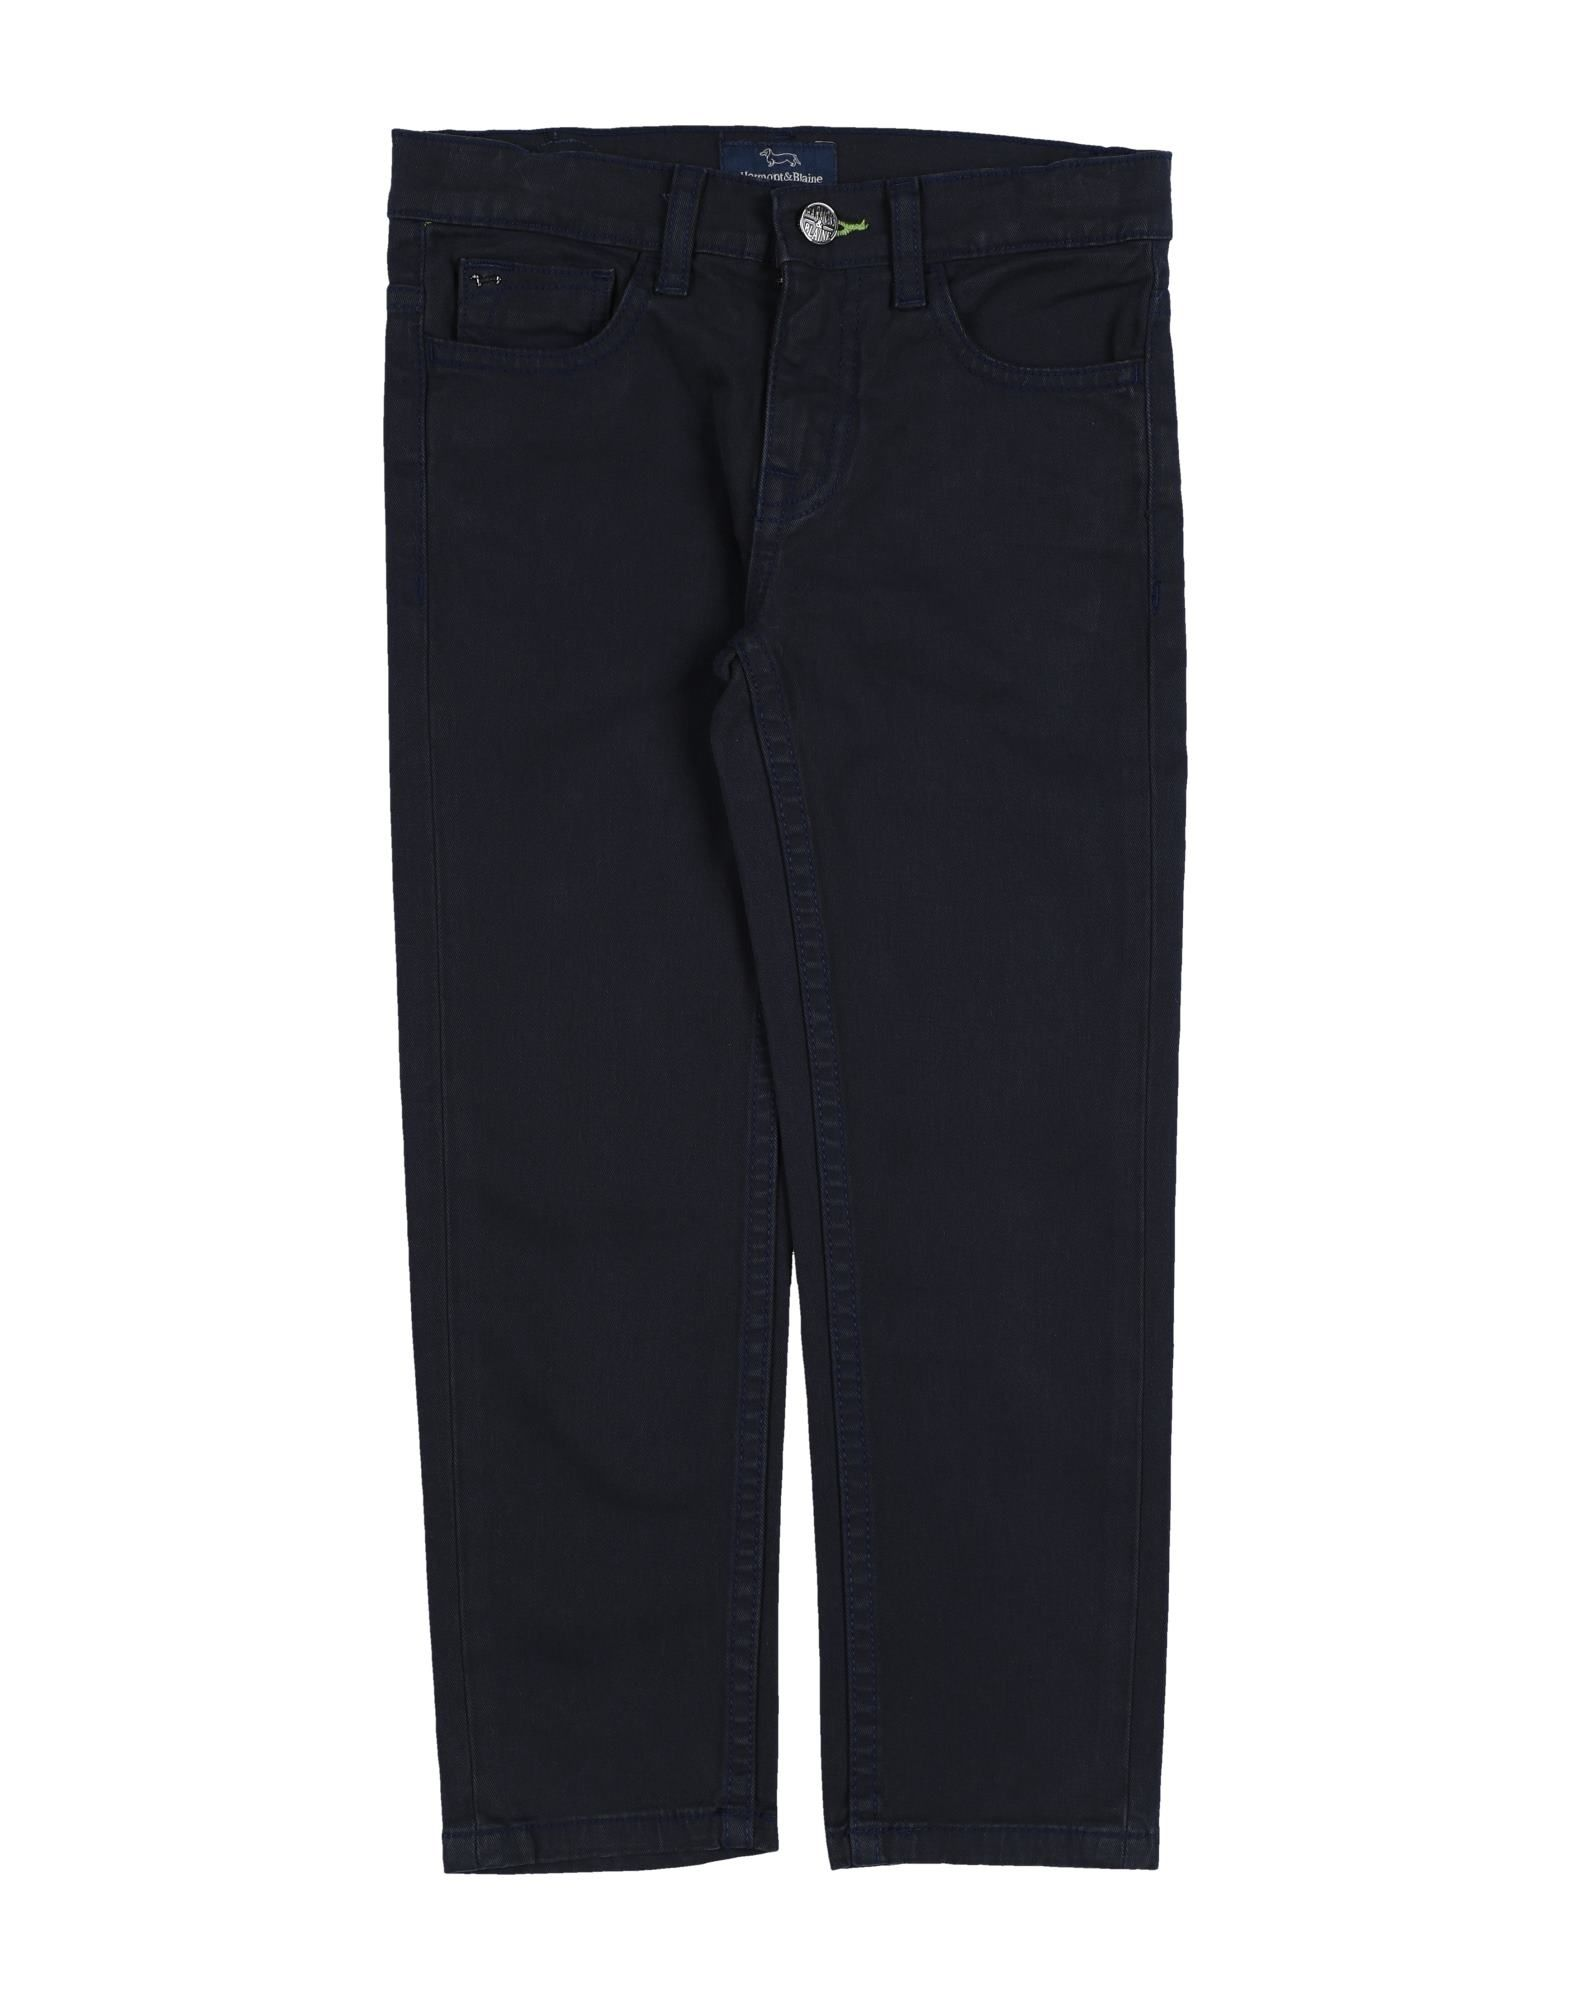 Harmont & Blaine Kids' Casual Pants In Black